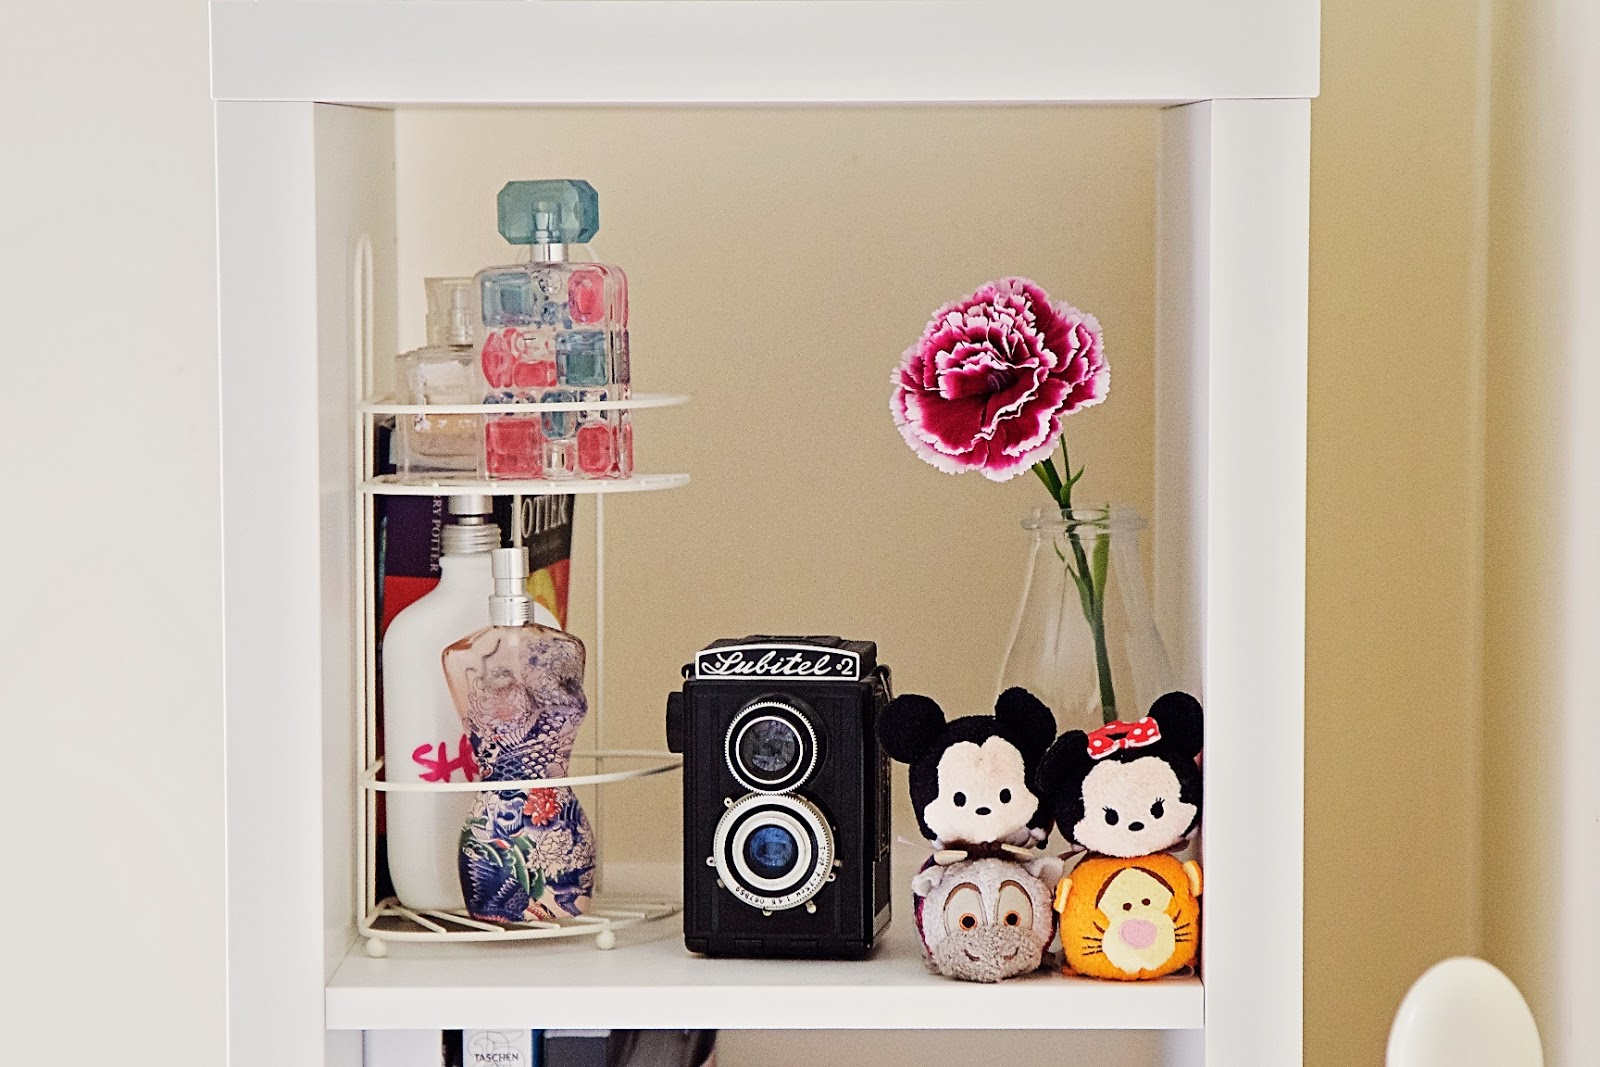 Disney Tsum Tsums displayed on a shelf.